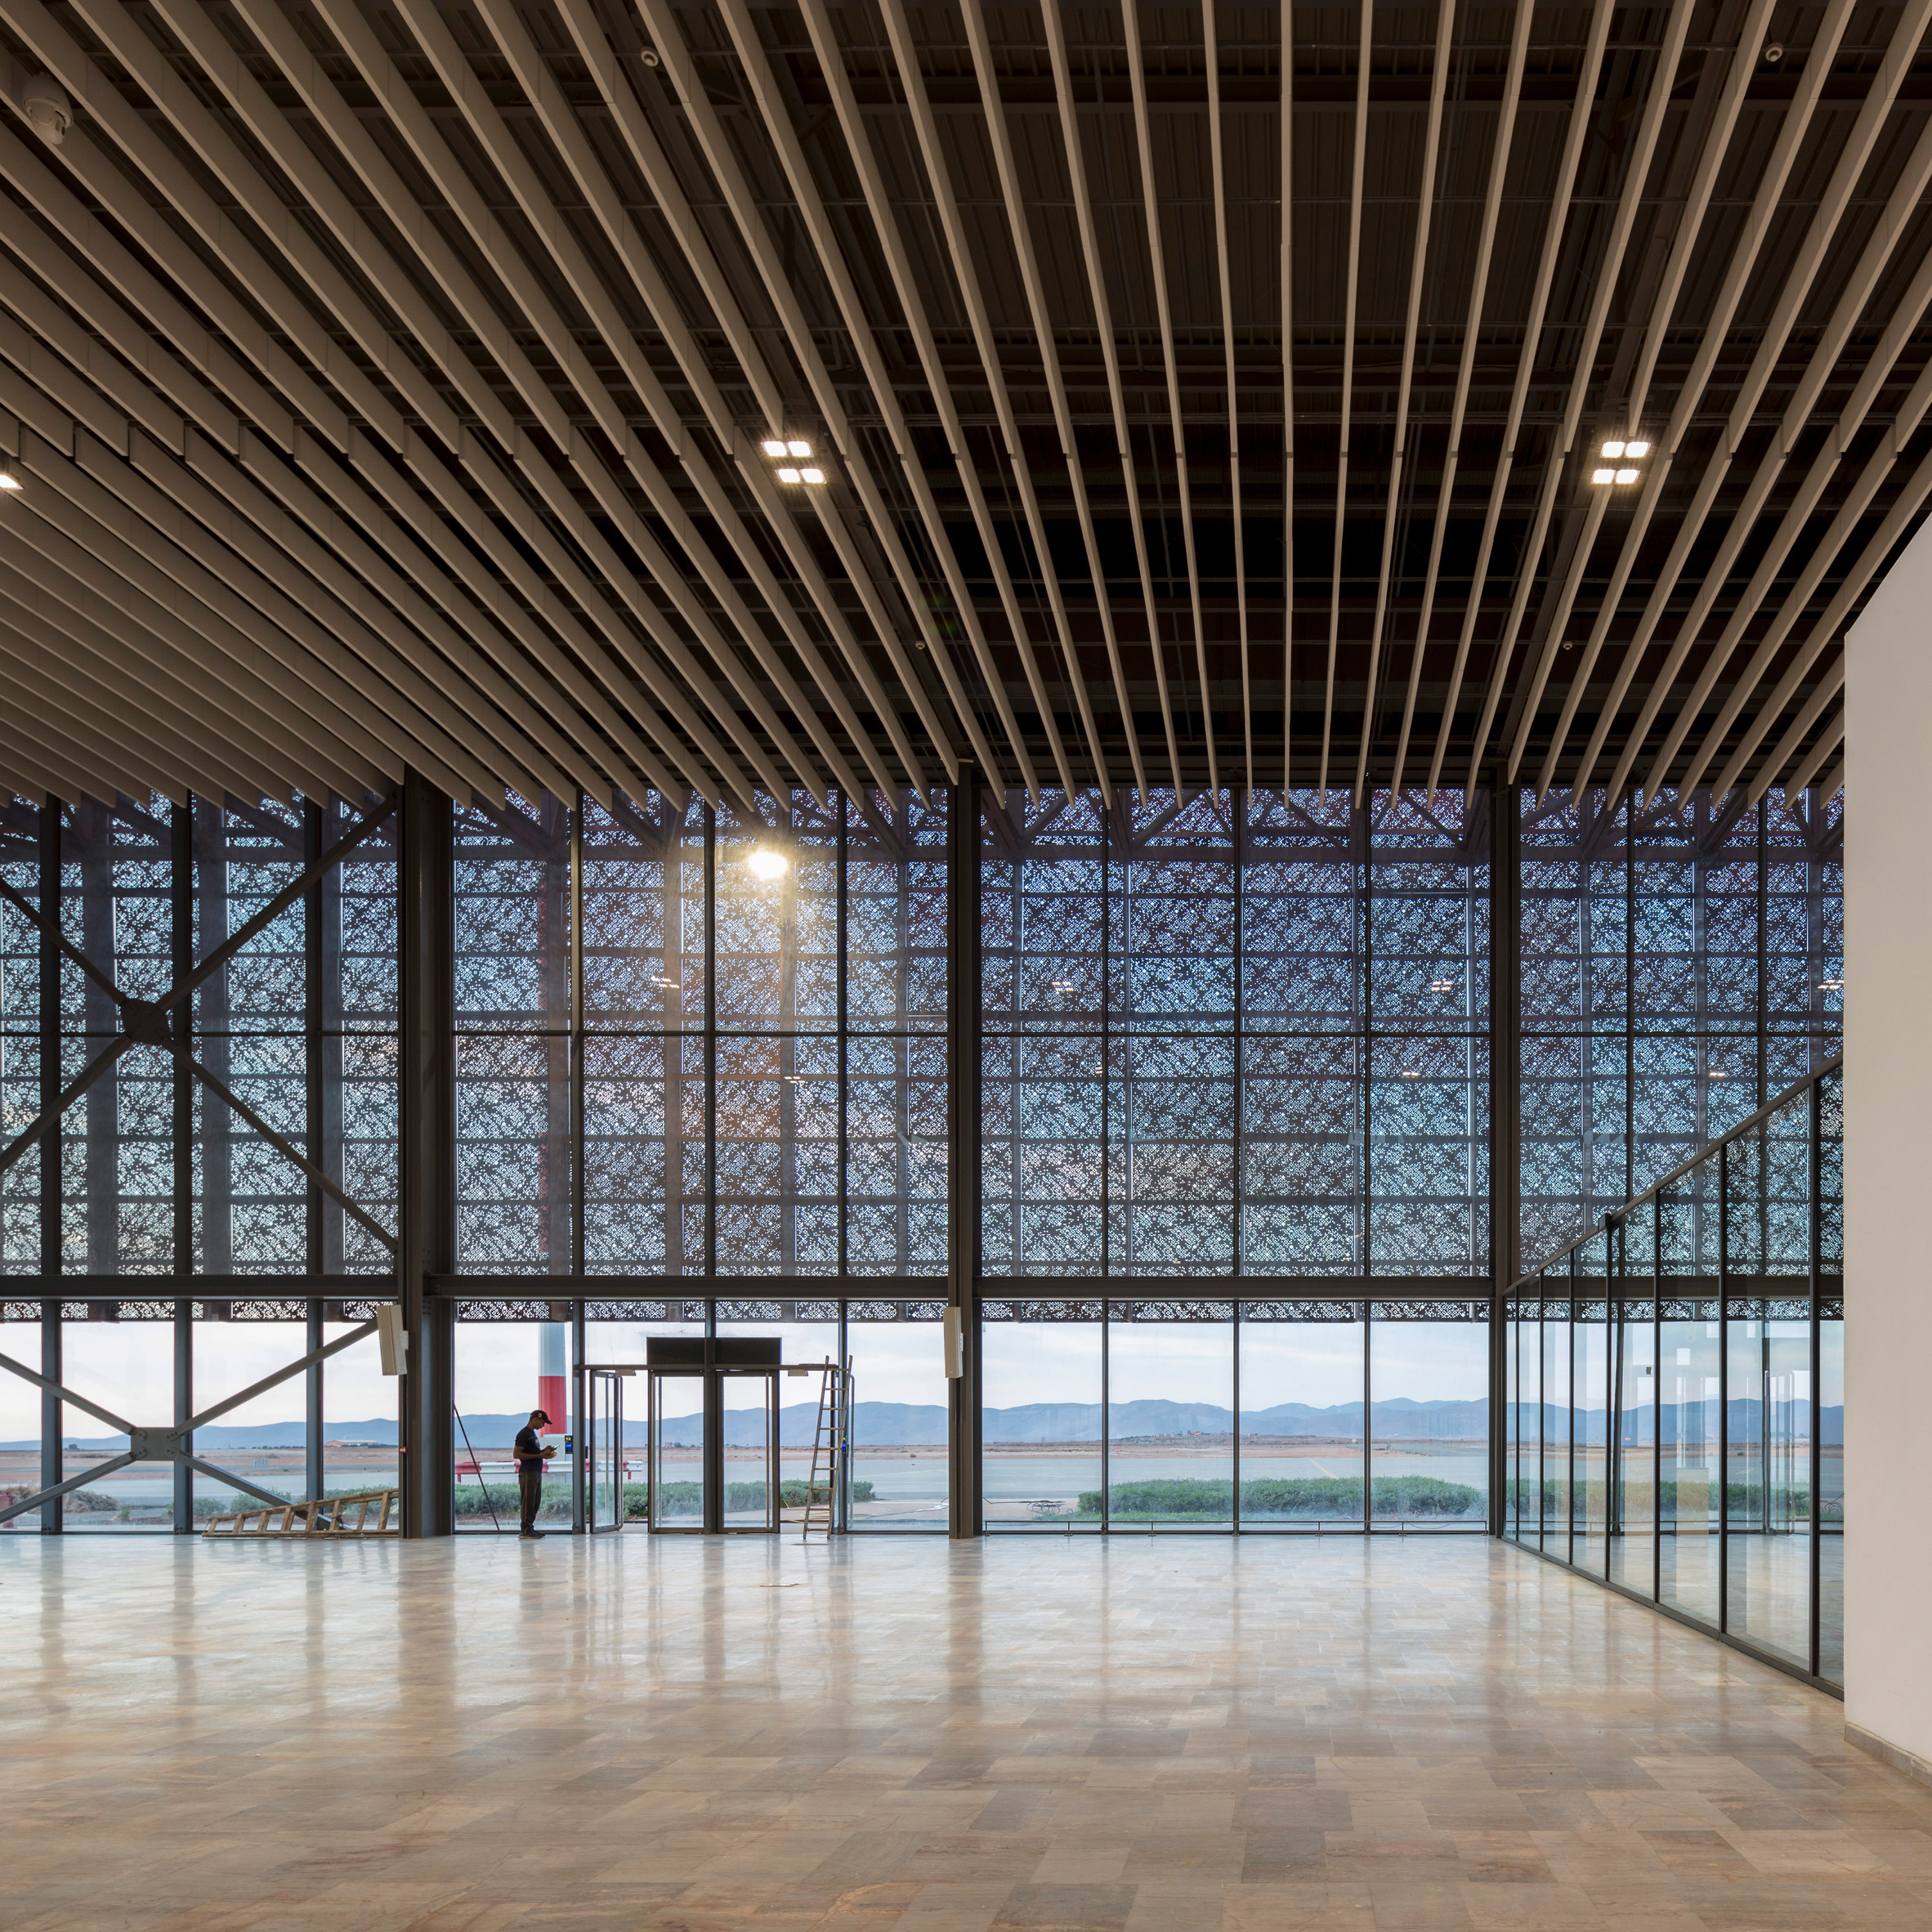 Guelmim Airport by Groupe3Architectes